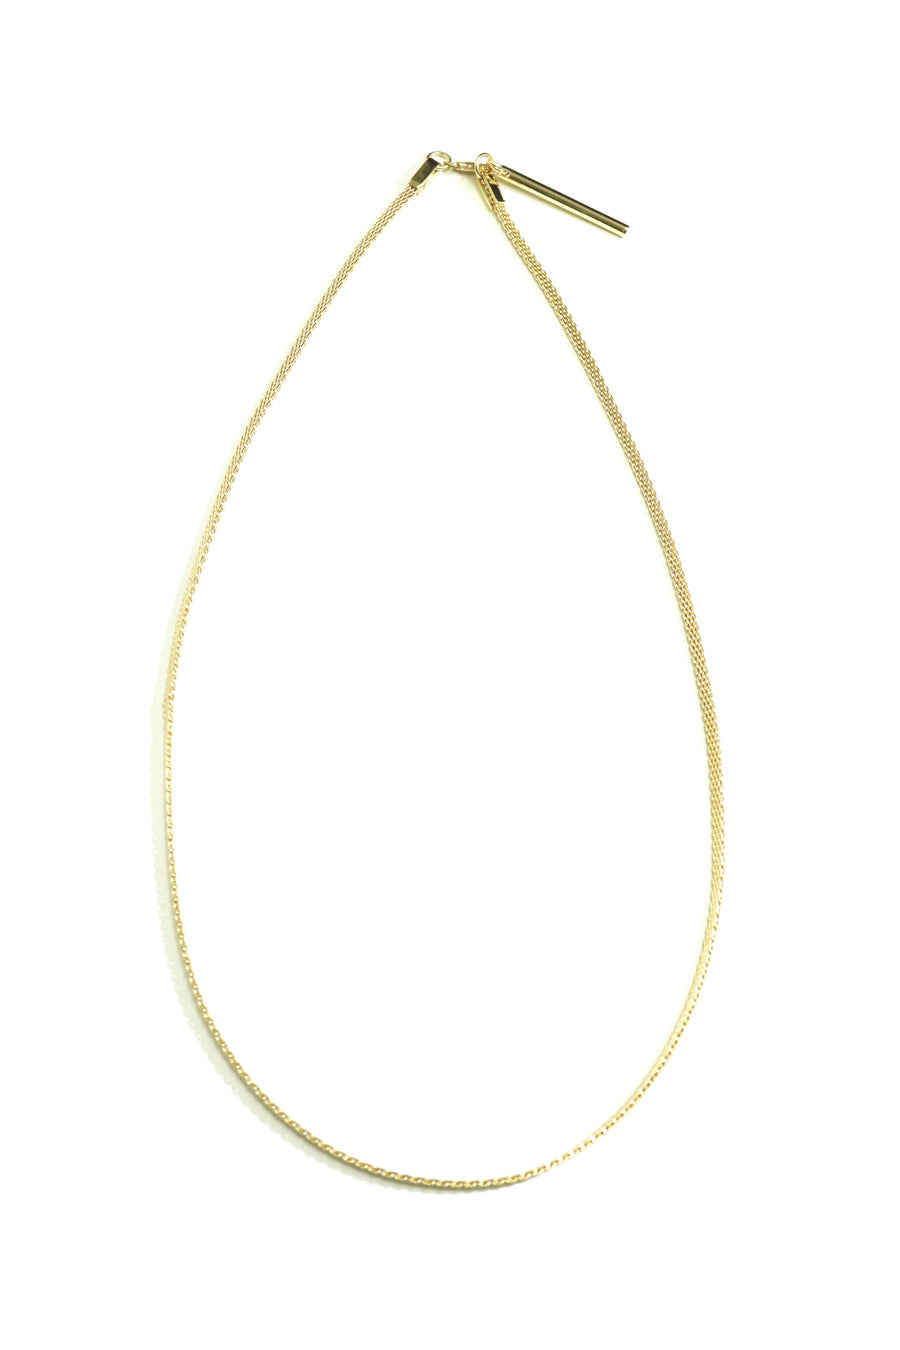 RATHEL & WOLF  PATRISSE necklace(Gold)